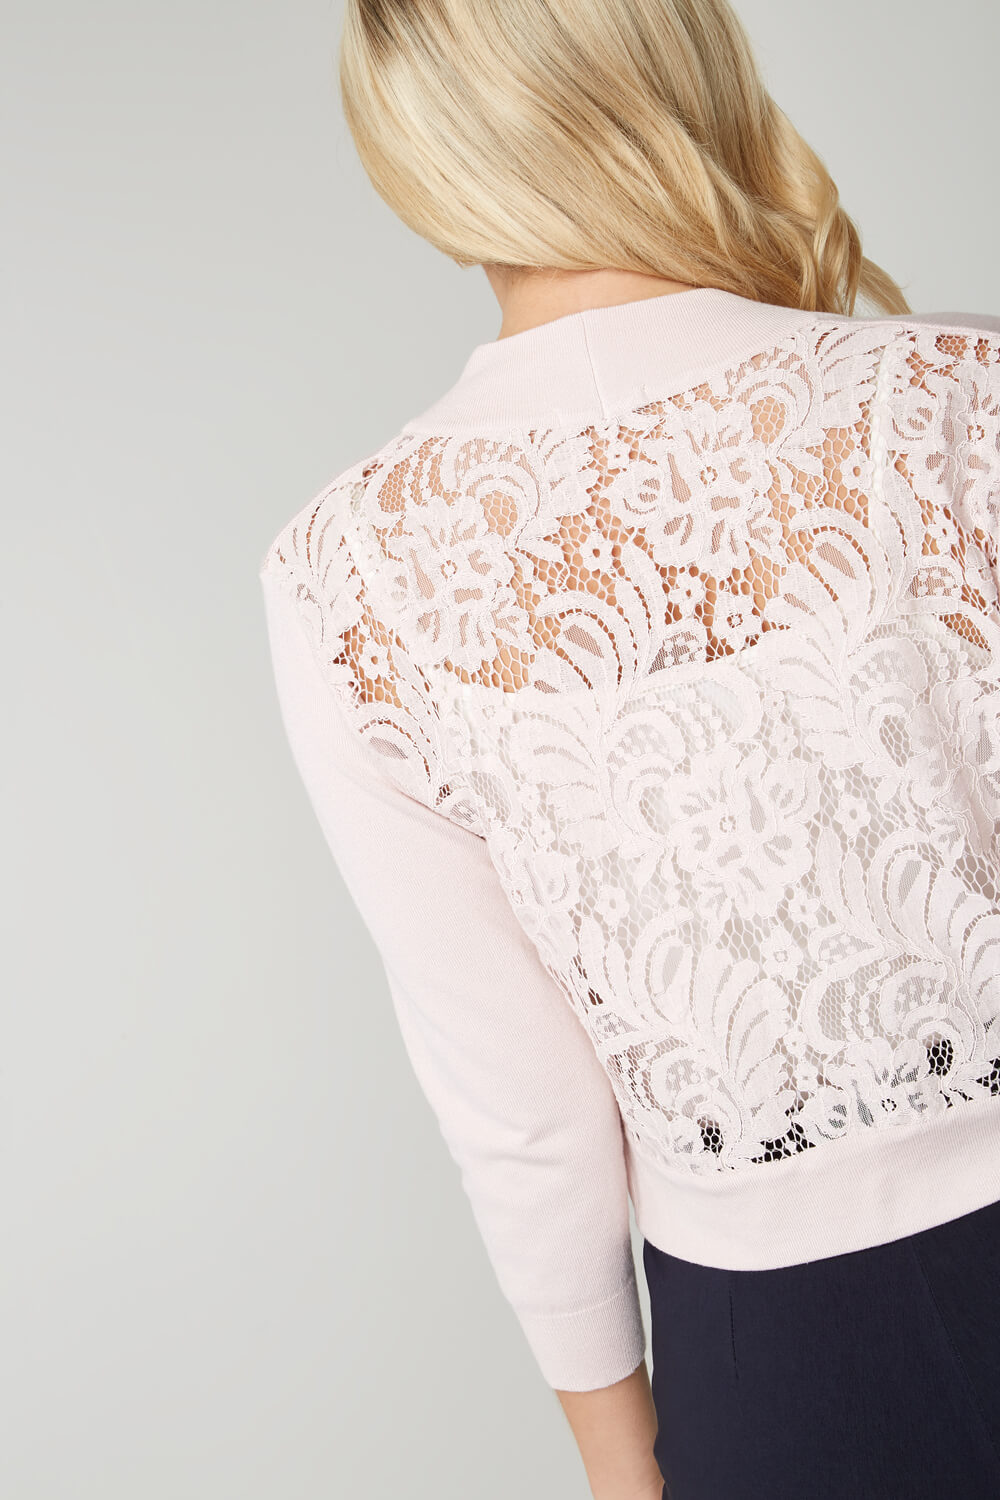 Roman-Originals-Women-039-s-White-Lace-Back-Shrug-Cardigan-Sizes-10-20 thumbnail 35